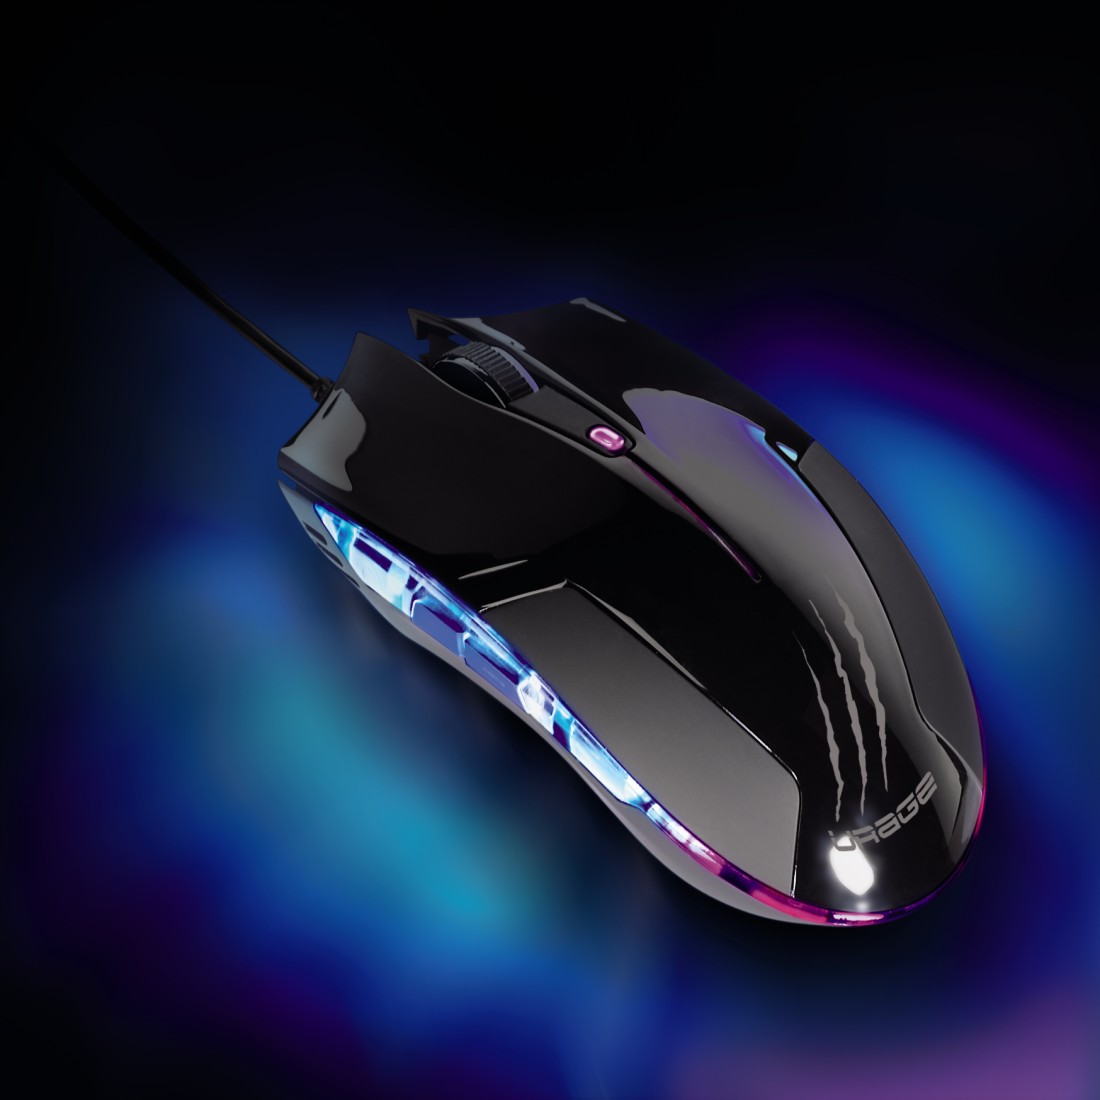 awx High-Res Appliance - Hama, uRage Gaming Mouse